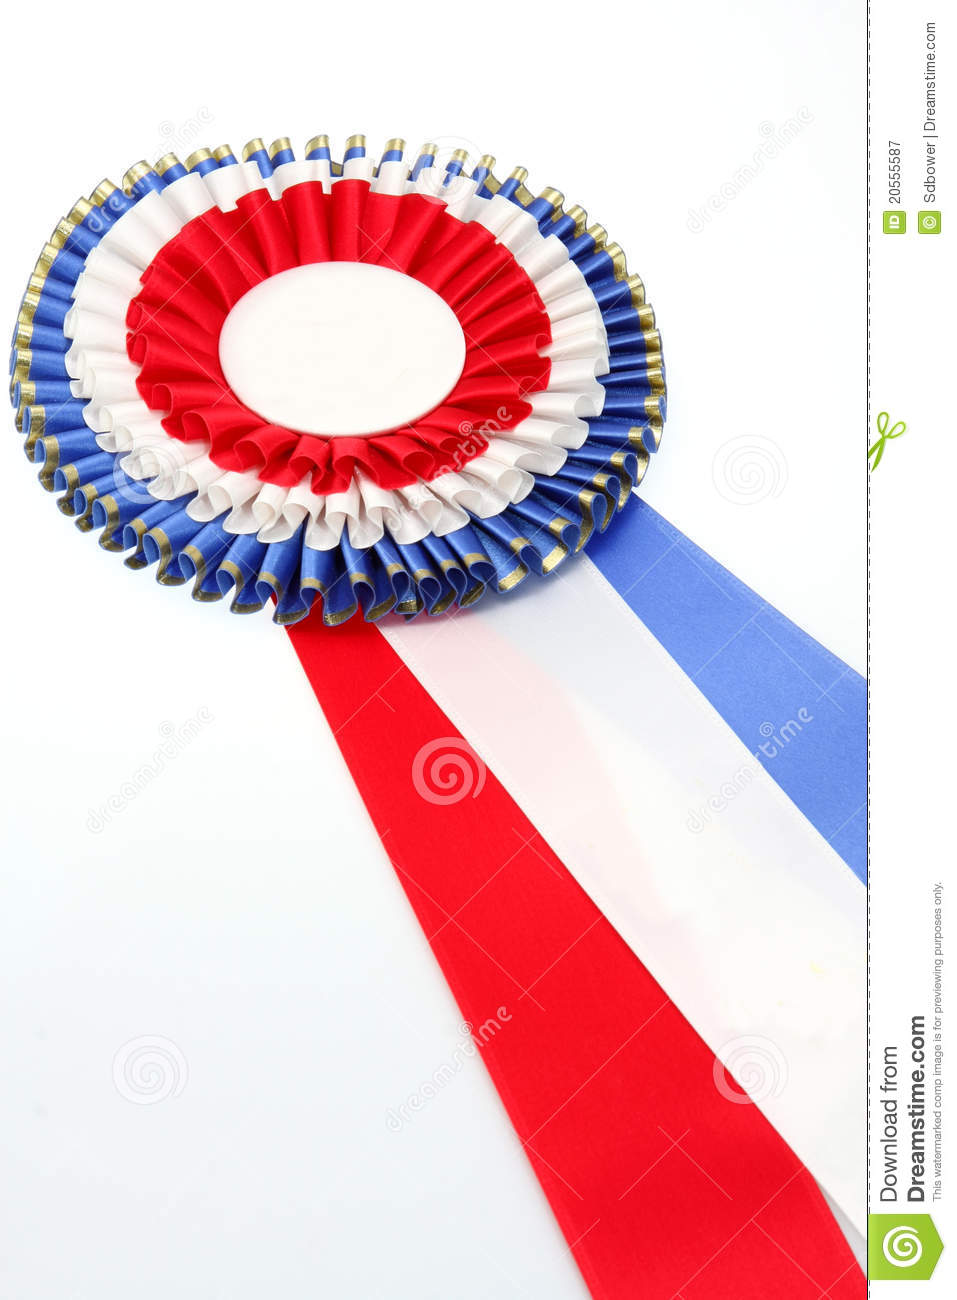 Best of Show Ribbon stock image  Image of rosette, first - 20555587